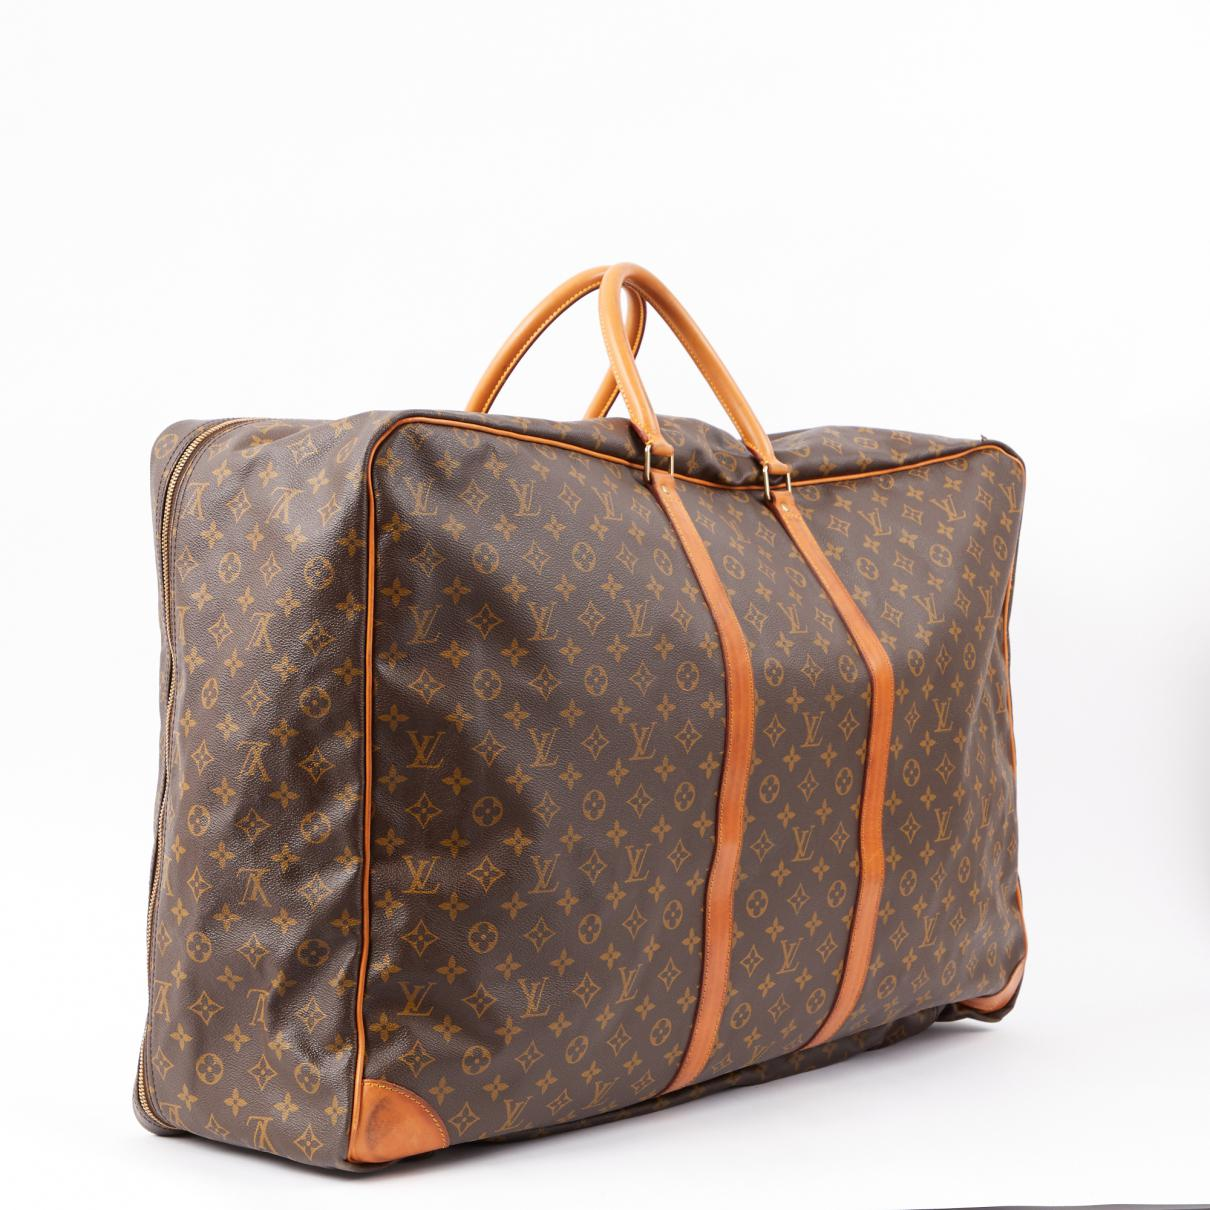 Louis Vuitton Leather Travel Bag in Brown - Lyst